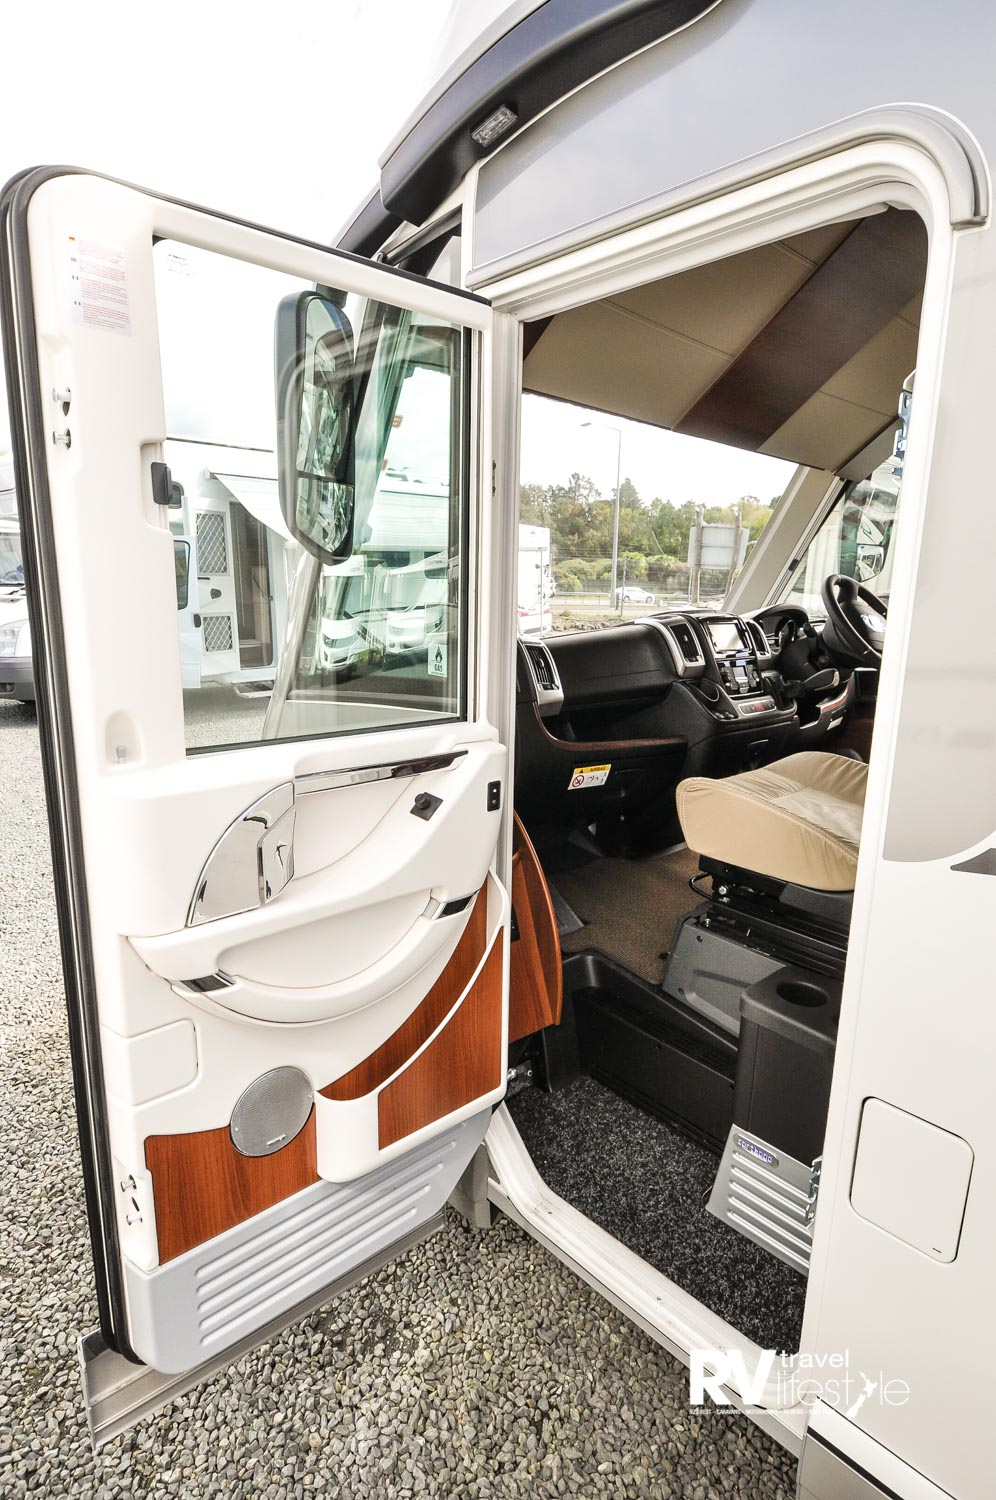 Passenger entry door: what a good-looking door, fitted window privacy blinds, storage and easy step up into the expansive cab area